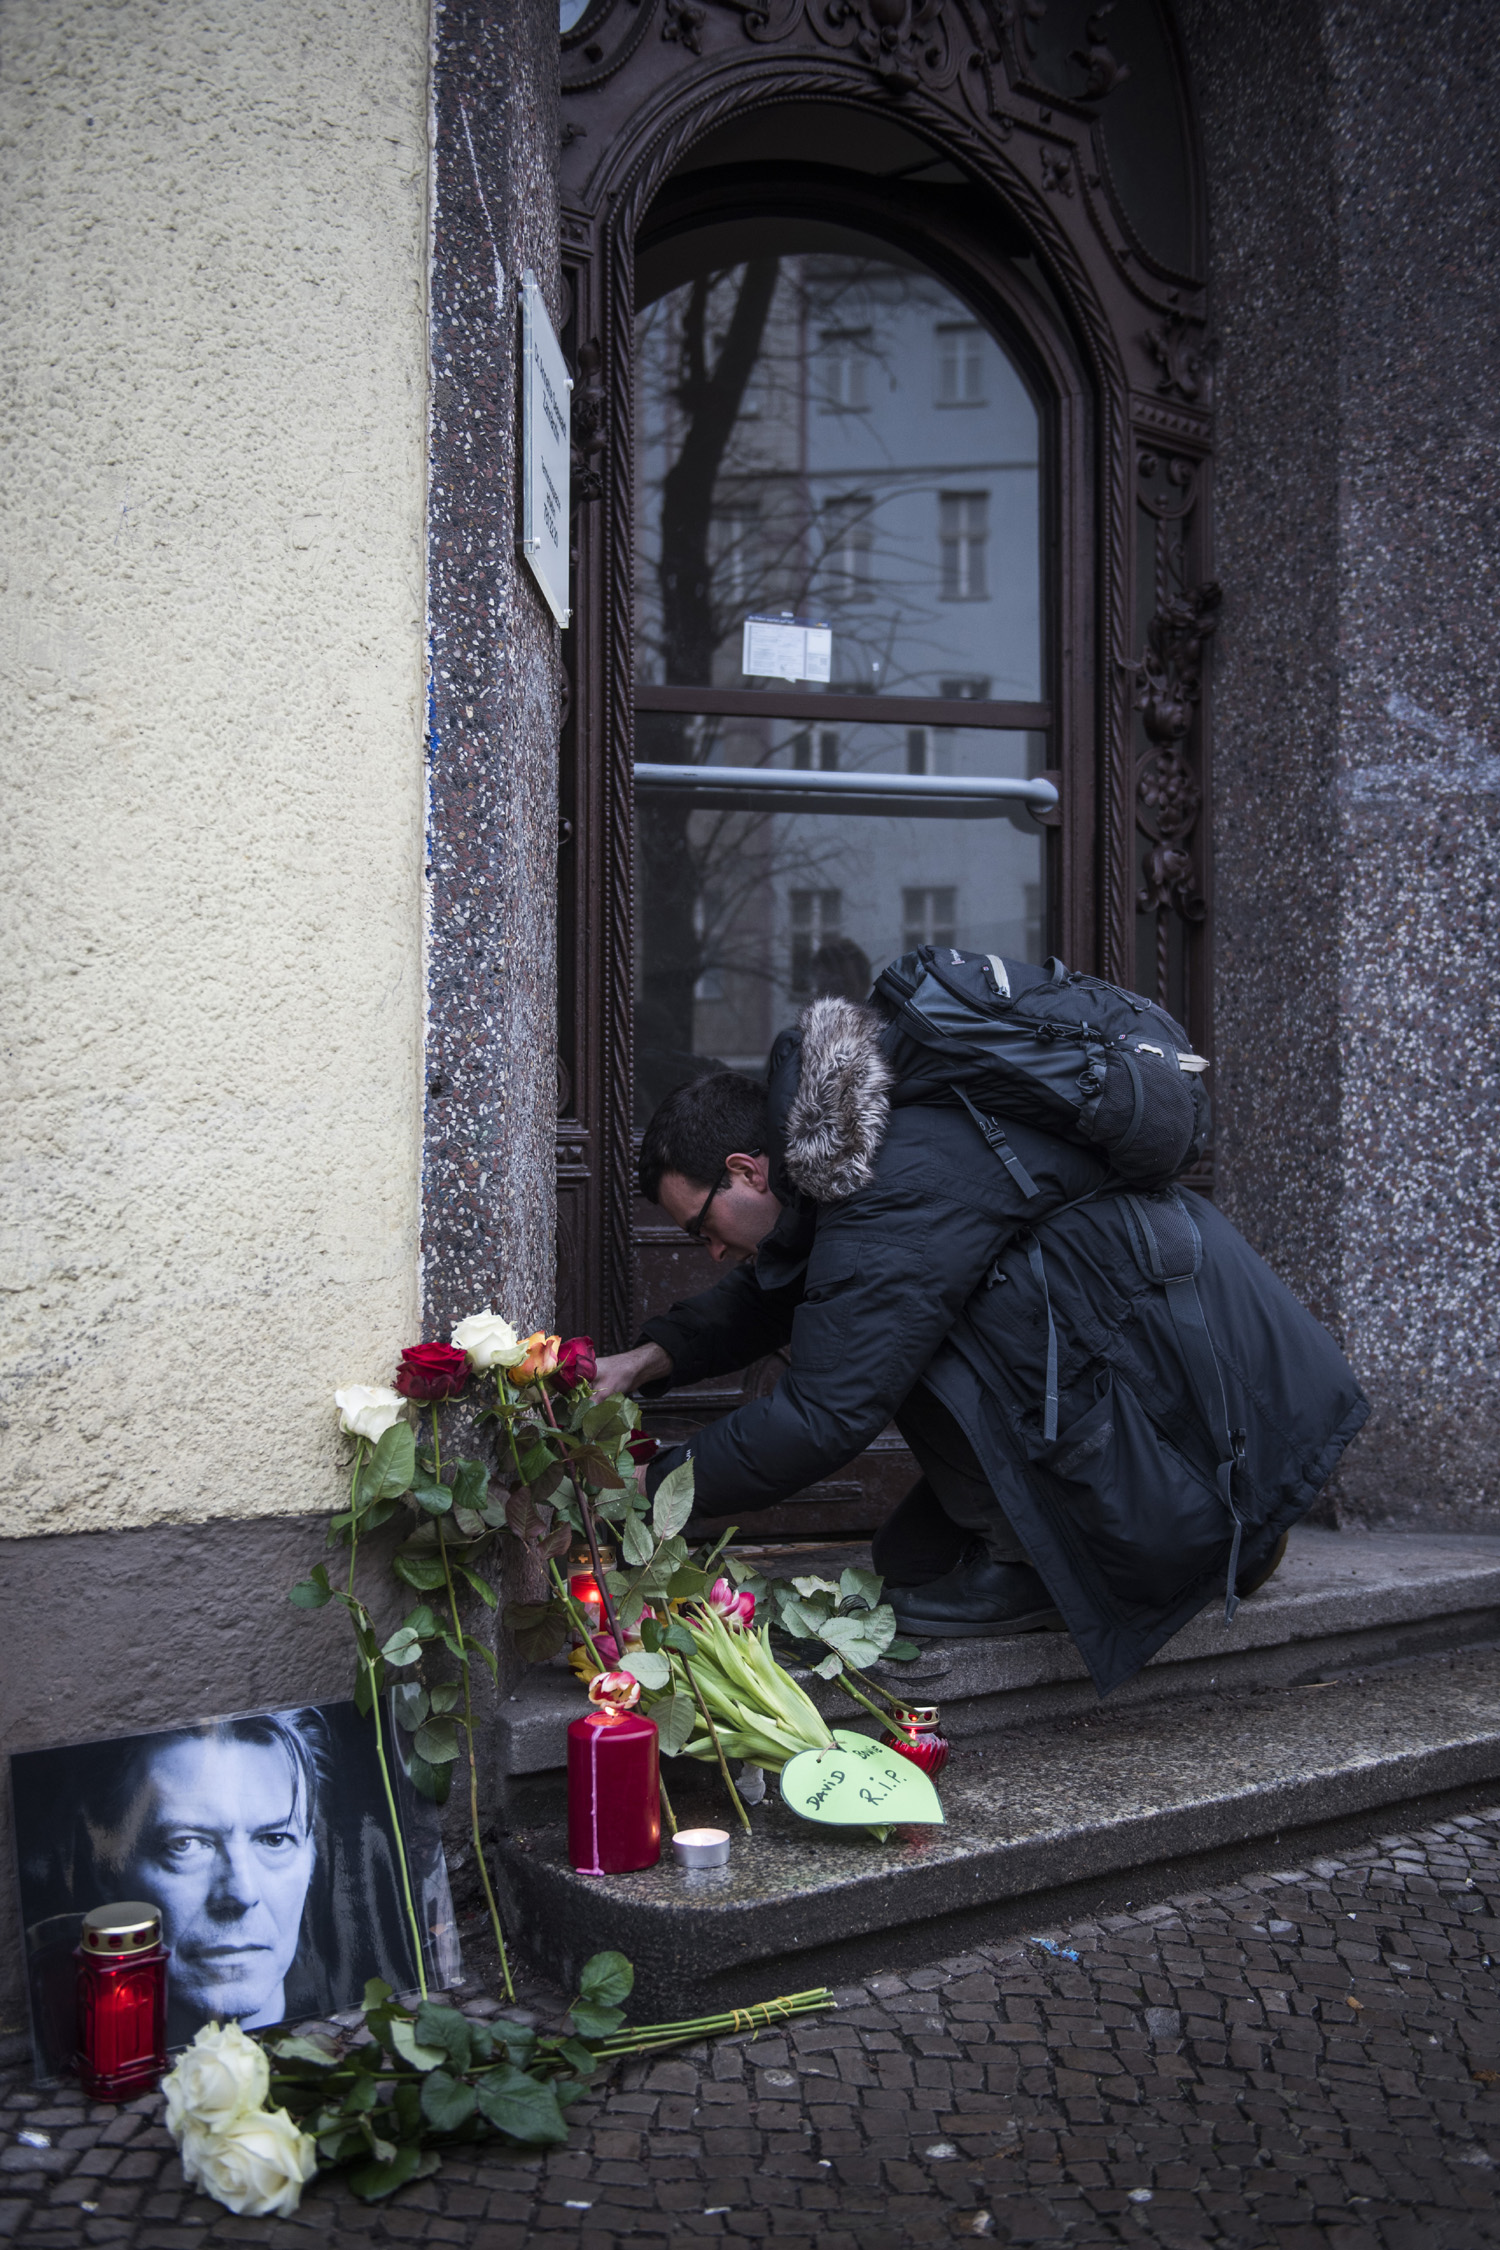 David-Bowie-fan Jamie Young puts down a tribute to British rock legend David Bowie outside his former home in Berlin's Hauptstrasse 155 on January 11, 2016. British rock music legend David Bowie has died after a long battle with cancer, his official Twitter and Facebook accounts said. / AFP / ODD ANDERSEN